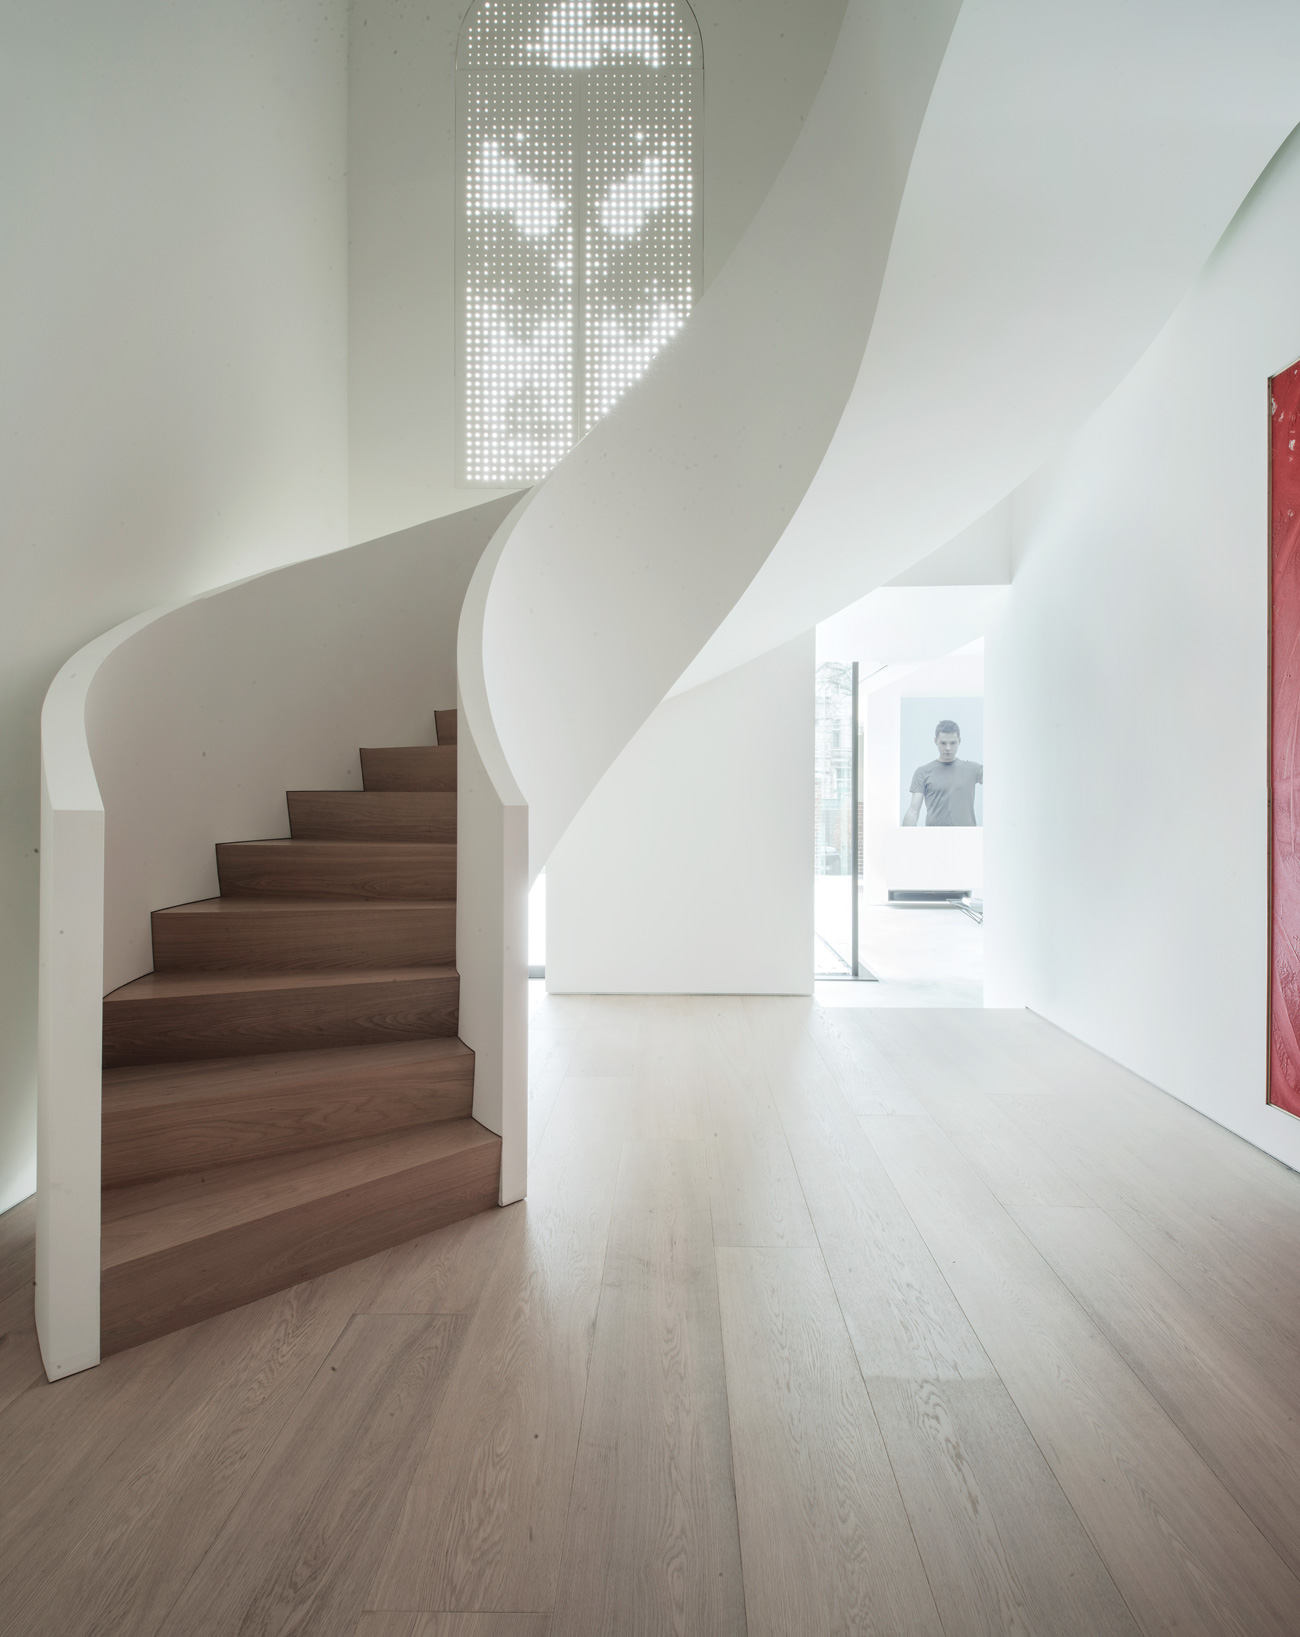 A perforated screen covers the second-floor window, so as not to distract from the commanding stairway.